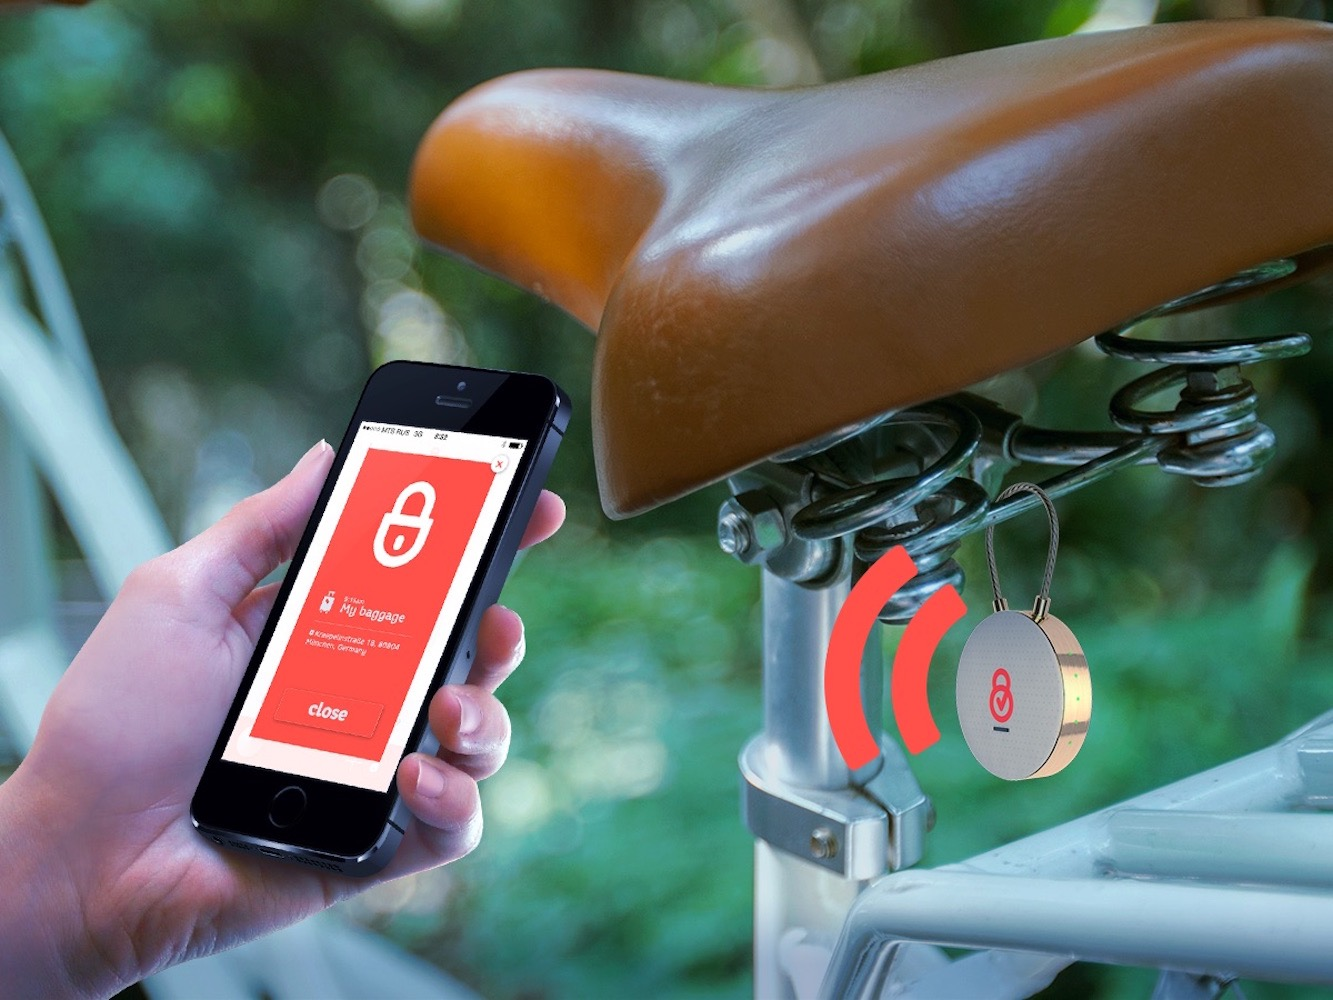 The Lockee Keeps your Luggage Safe and Secure